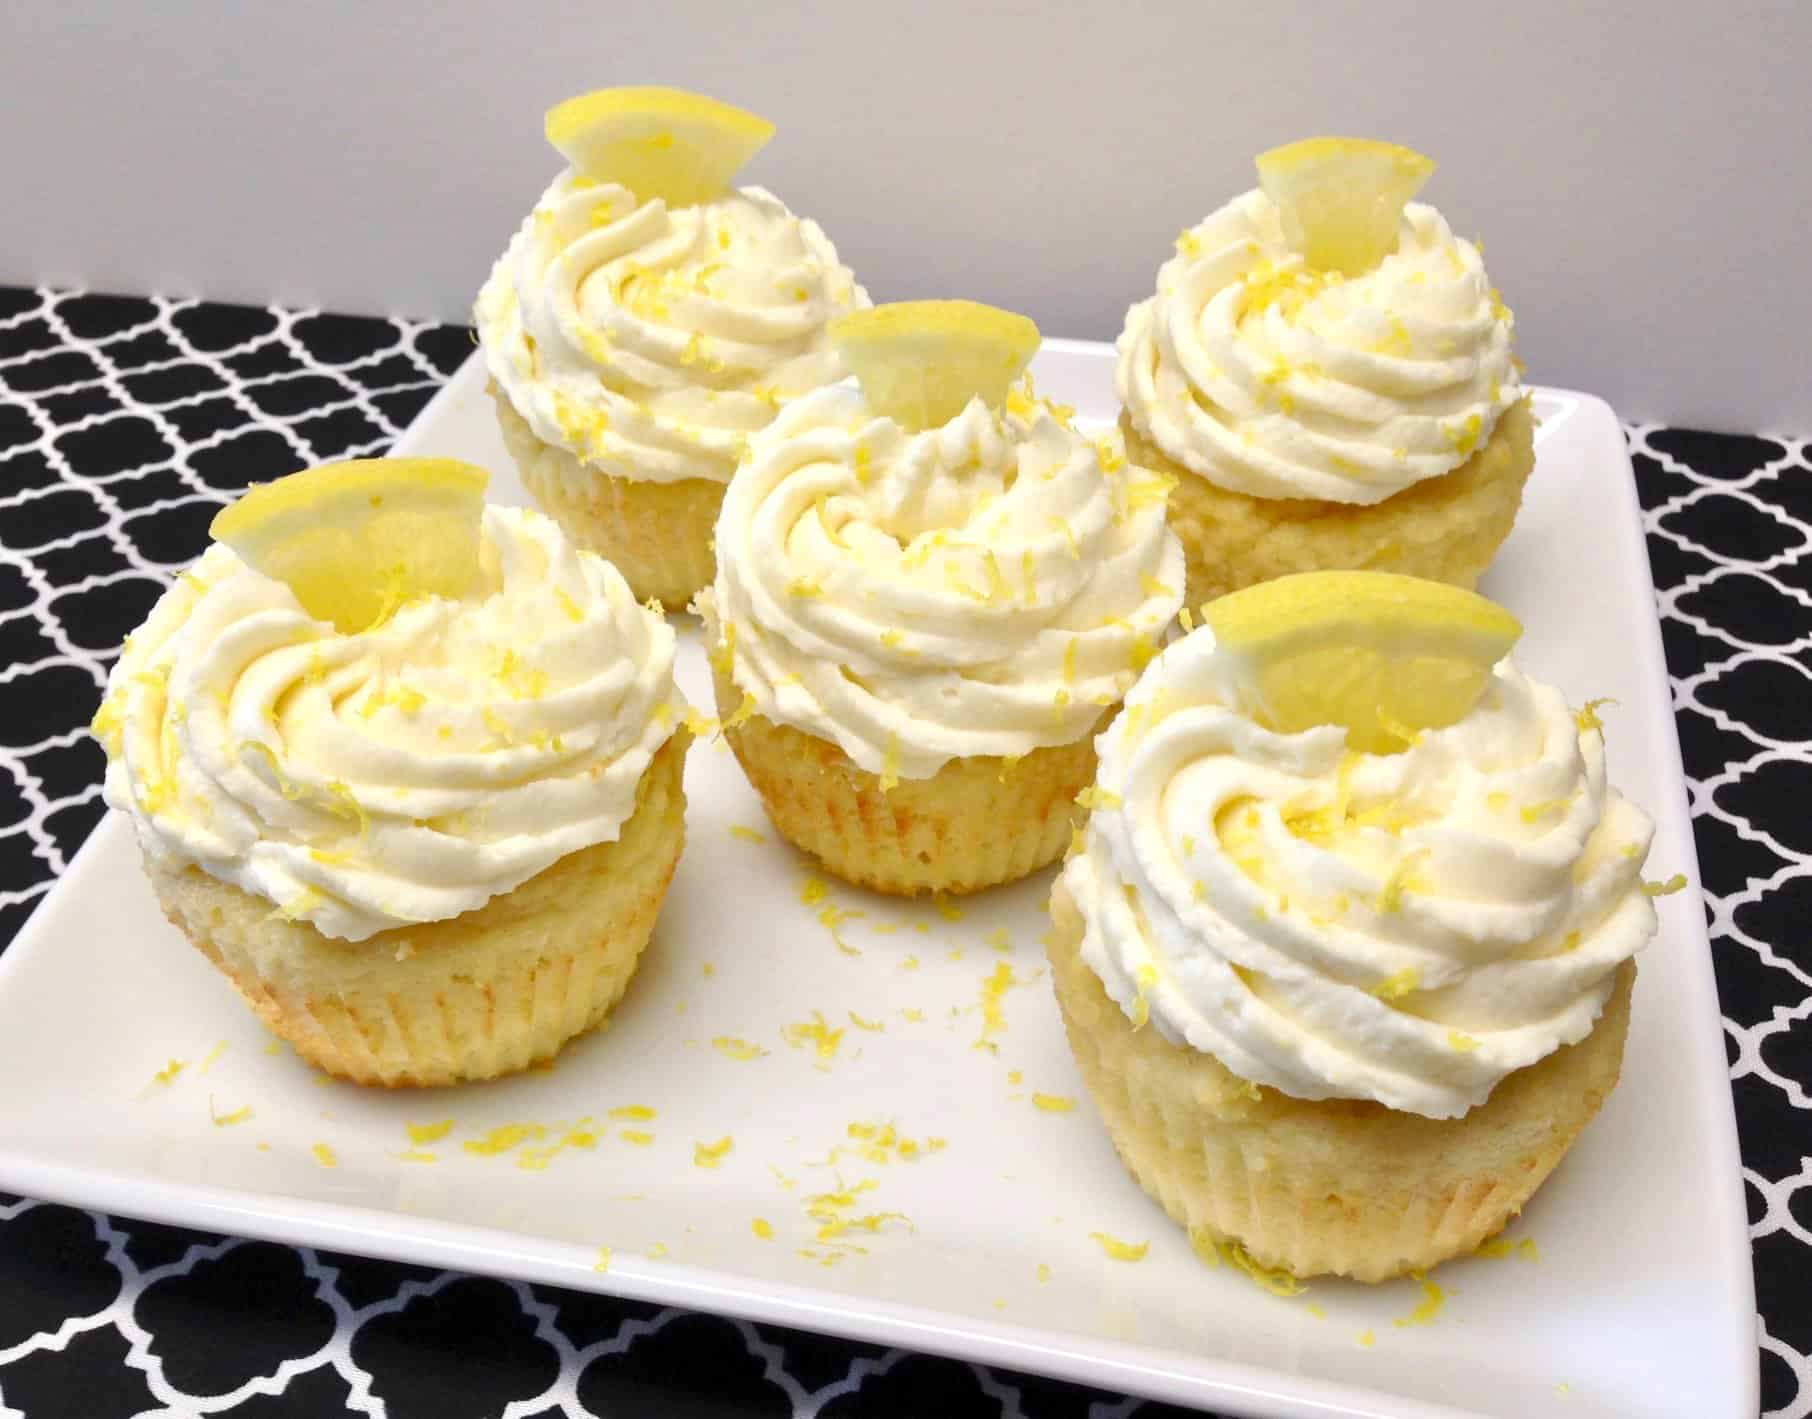 5 frosted lemon cupcakes on white plate